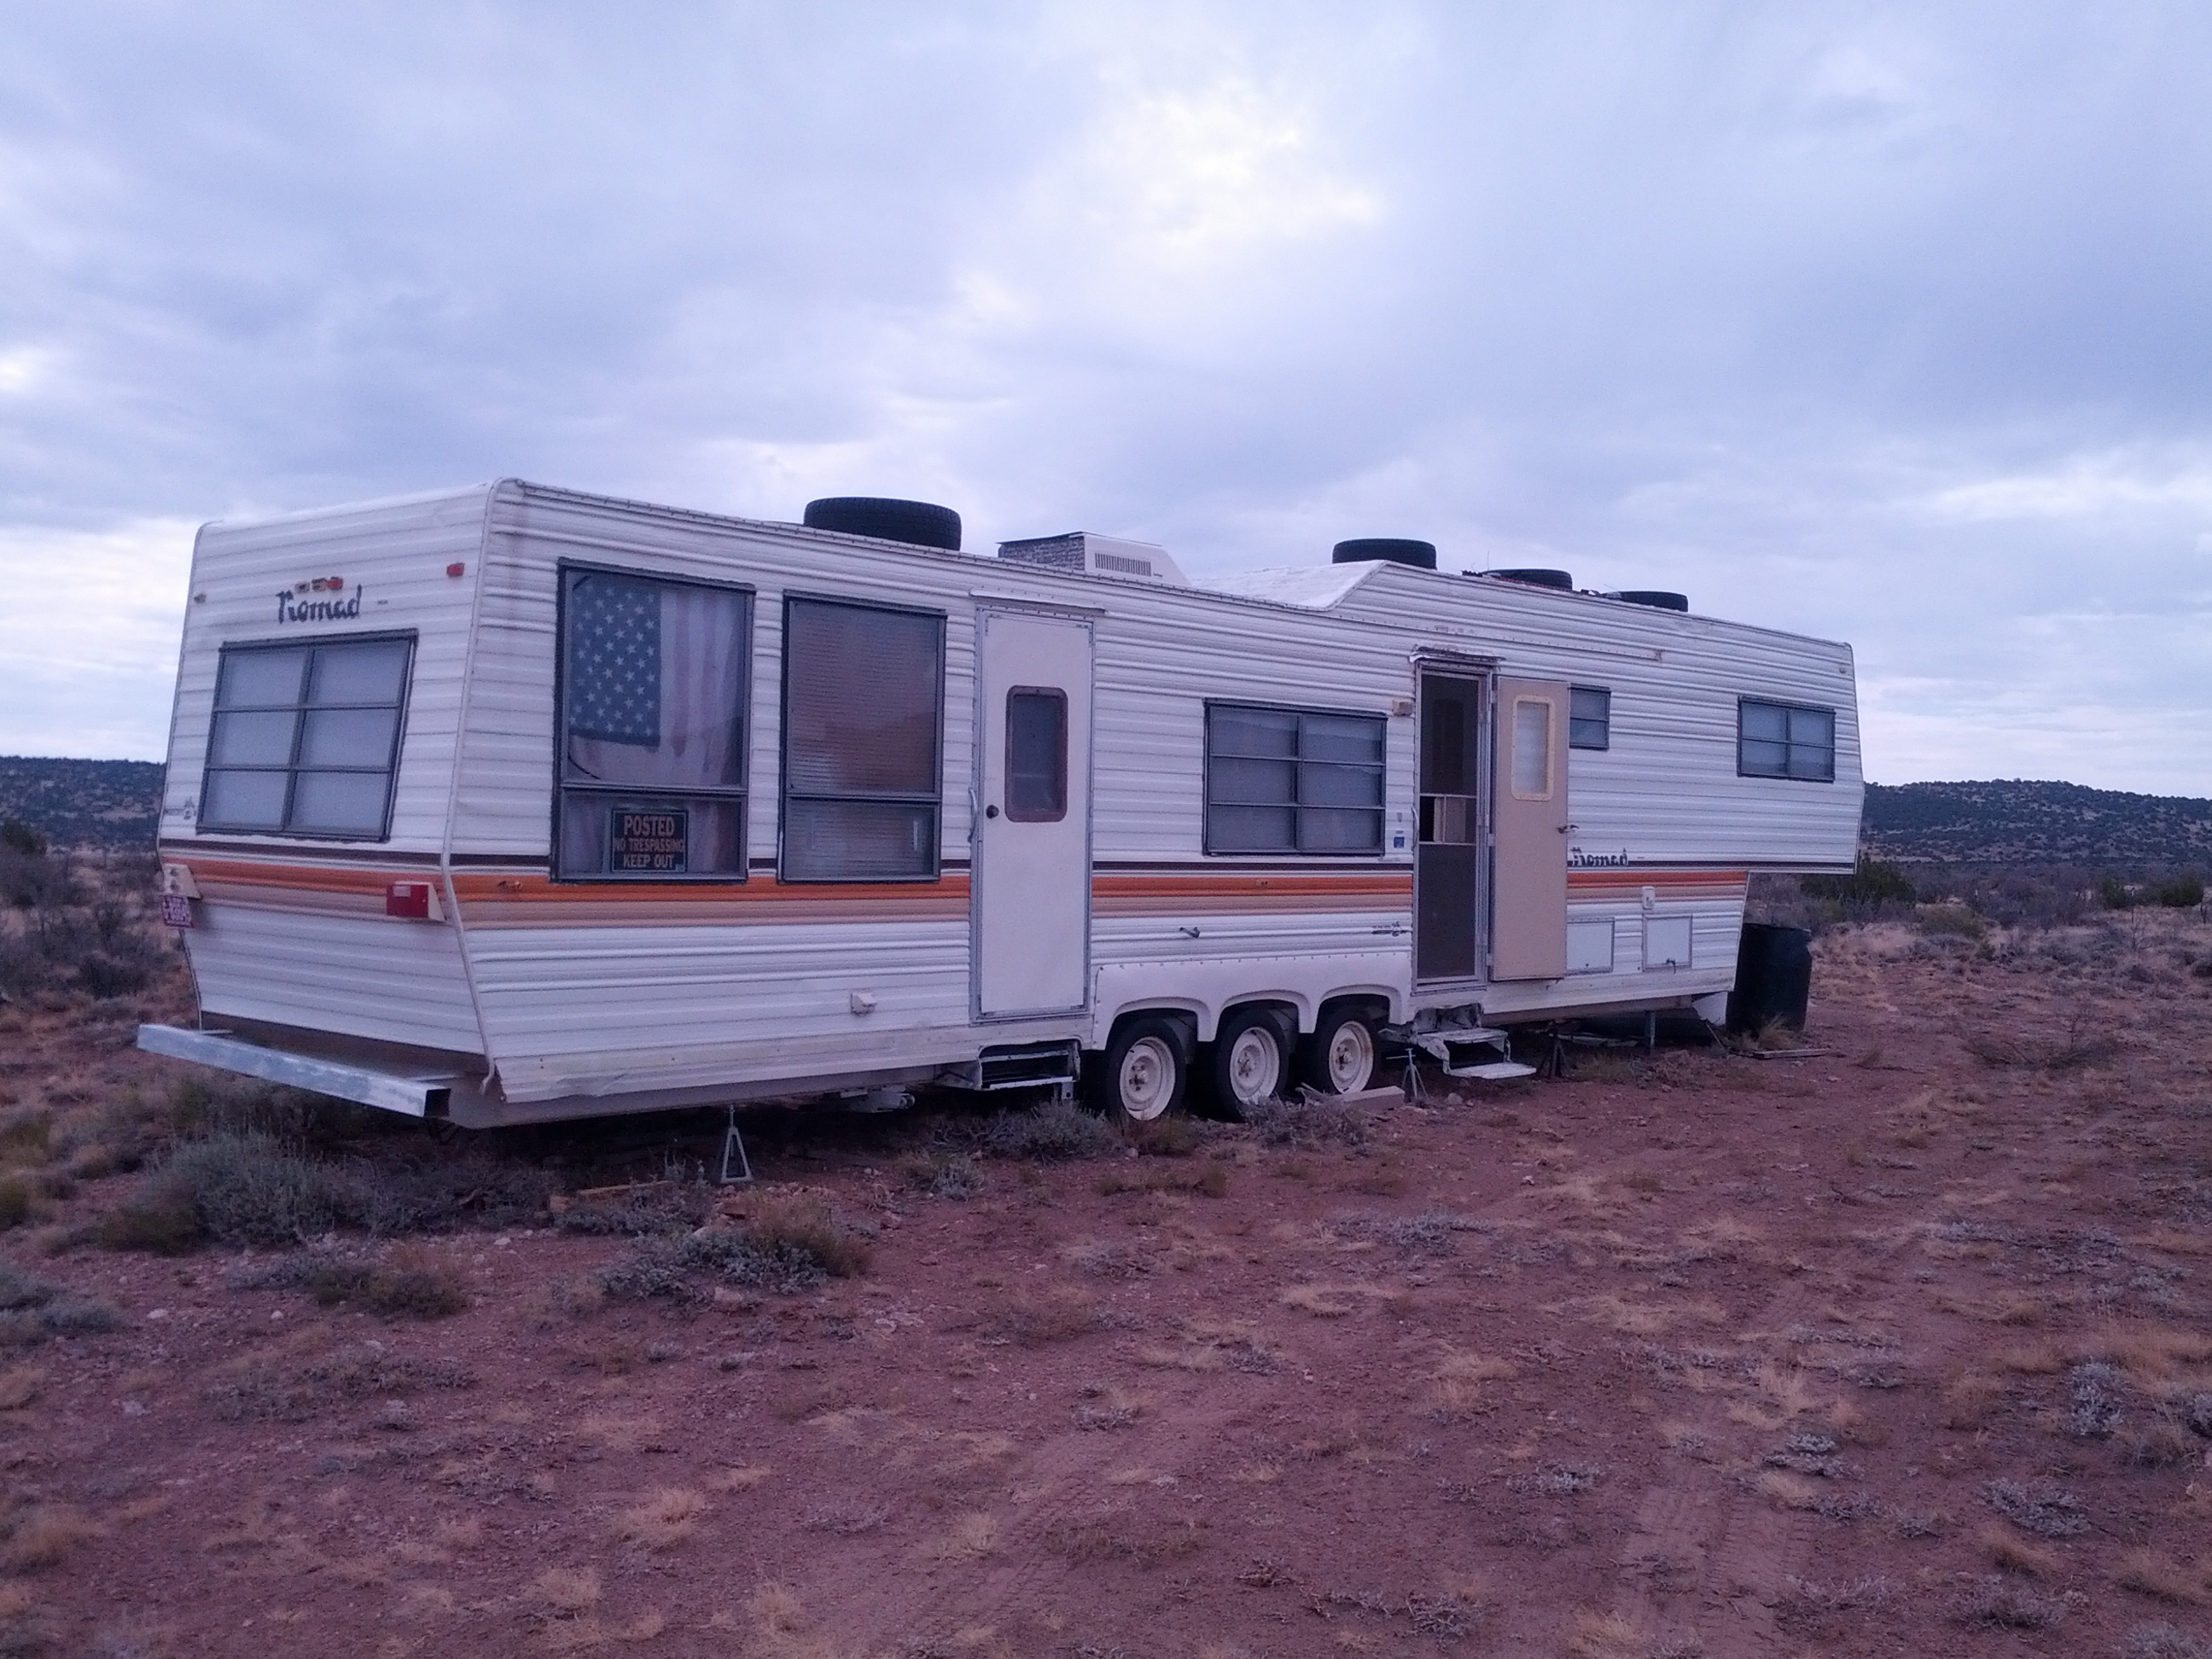 Travel Trailers For Sale Puyallup Wa >> Catchy Collections of Nomad 5th Wheel - Fabulous Homes Interior Design Ideas